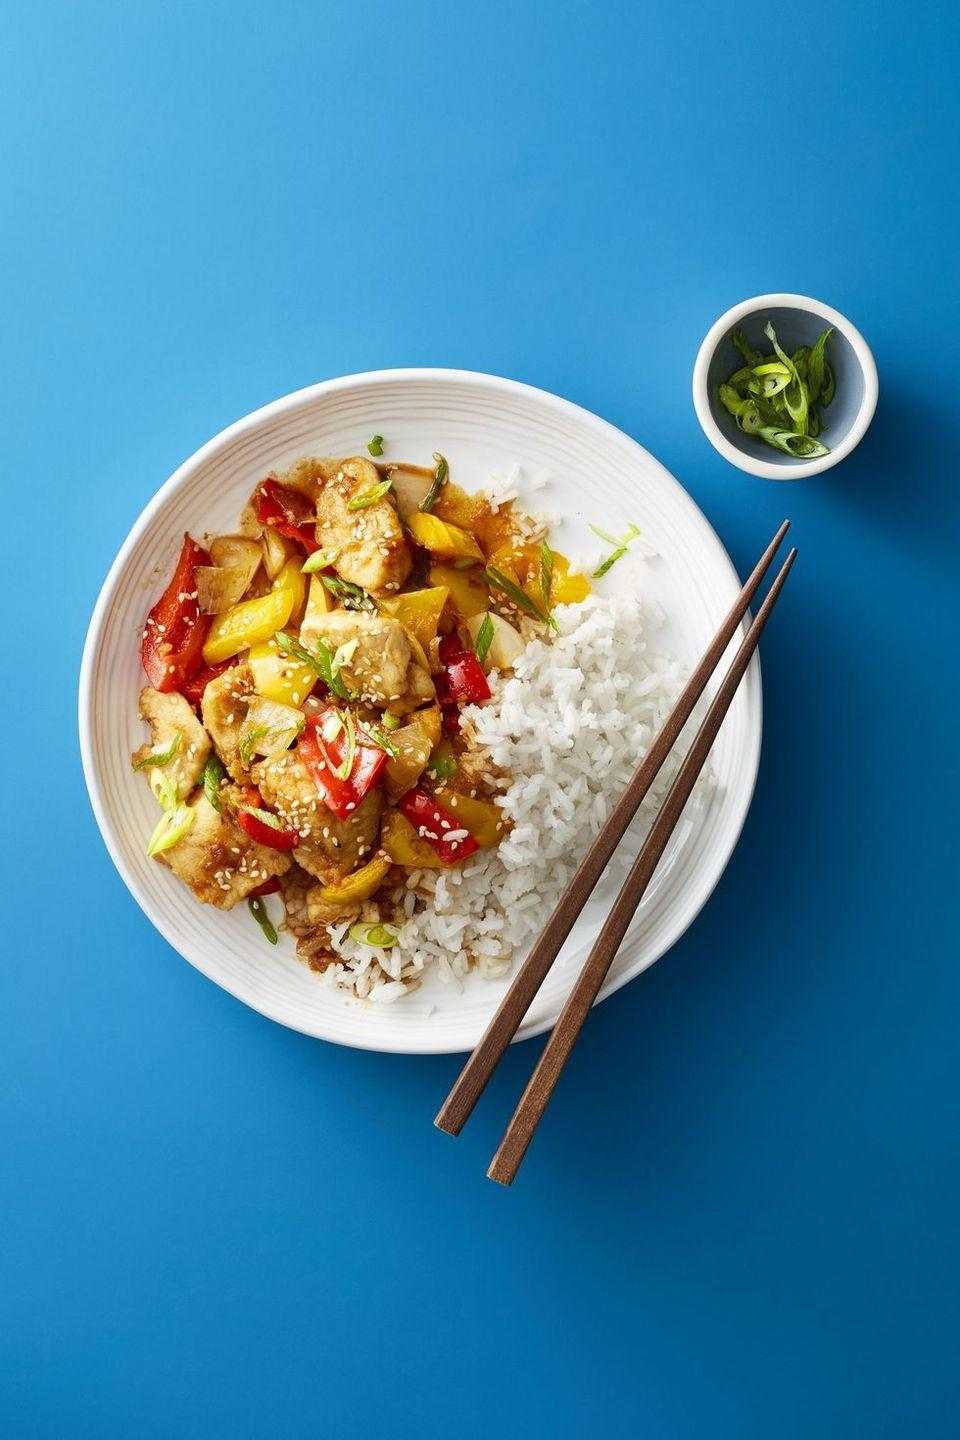 """<p>Skip takeout and opt for this kid-friendly (and veggie-packed!) stir-fry instead.</p><p><em><a href=""""https://www.goodhousekeeping.com/food-recipes/easy/a47684/sesame-chicken-stir-fry-recipe/"""" rel=""""nofollow noopener"""" target=""""_blank"""" data-ylk=""""slk:Get the recipe for Sesame Chicken Stir-Fry »"""" class=""""link rapid-noclick-resp"""">Get the recipe for Sesame Chicken Stir-Fry »</a></em></p><p><strong>RELATED:</strong> <a href=""""https://www.goodhousekeeping.com/food-recipes/easy/g755/chicken-breast-recipes/"""" rel=""""nofollow noopener"""" target=""""_blank"""" data-ylk=""""slk:60+ Chicken Breast Recipes That Are Anything But Boring"""" class=""""link rapid-noclick-resp"""">60+ Chicken Breast Recipes That Are Anything But Boring</a></p>"""